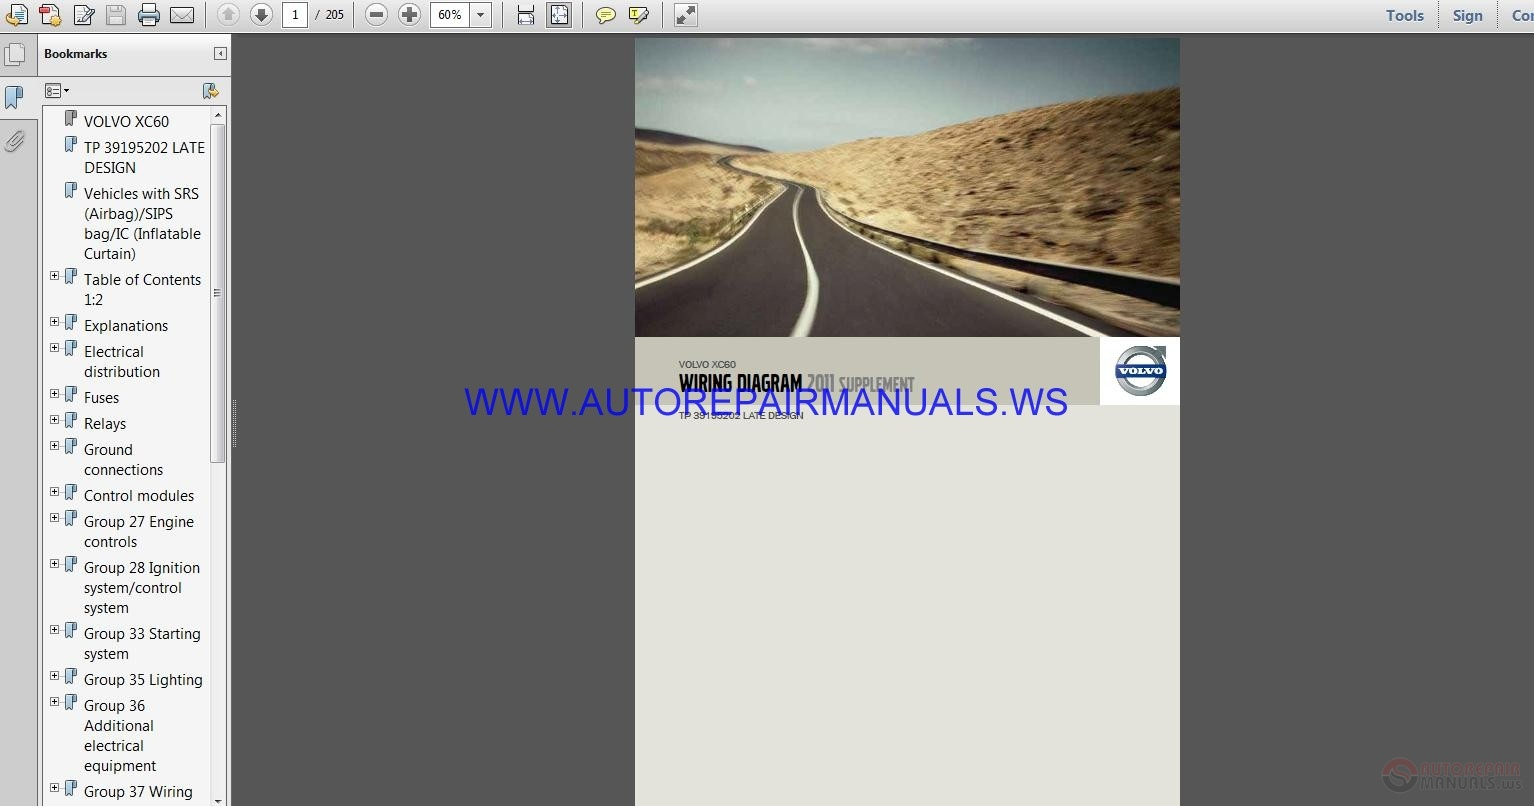 Volvo Xc60 Tp39195202 Late Design Wiring Diagram Manual